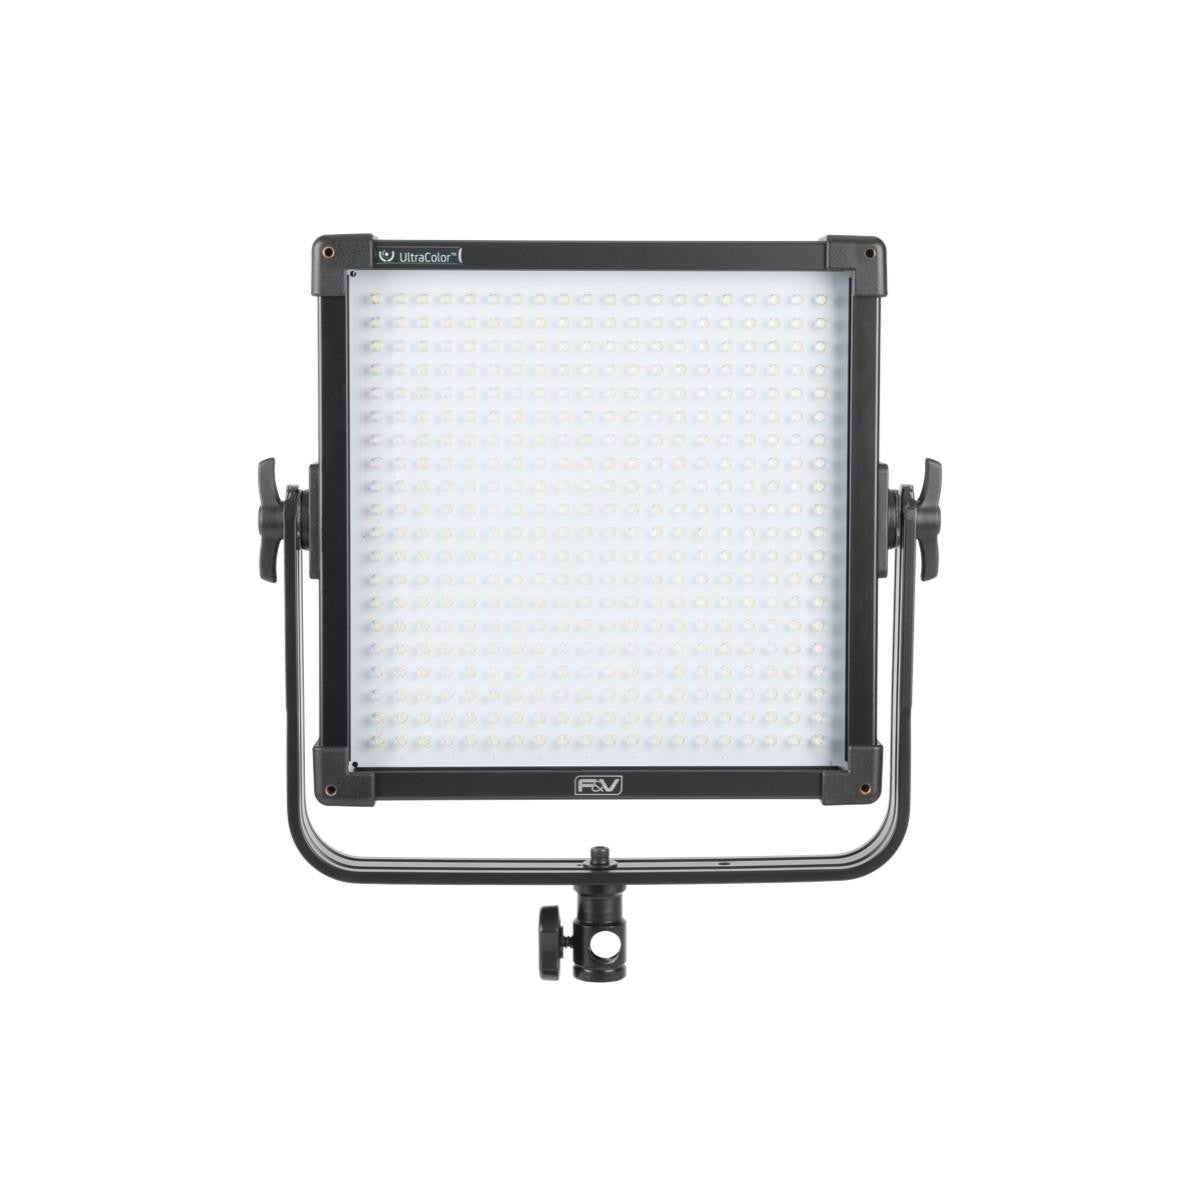 F&V Z400S UltraColor Bi-color LED Studio Panel | 3-light Kit (Anton Bauer) 109031040231ab - Lighting-Studio - F&V Lighting USA - Helix Camera